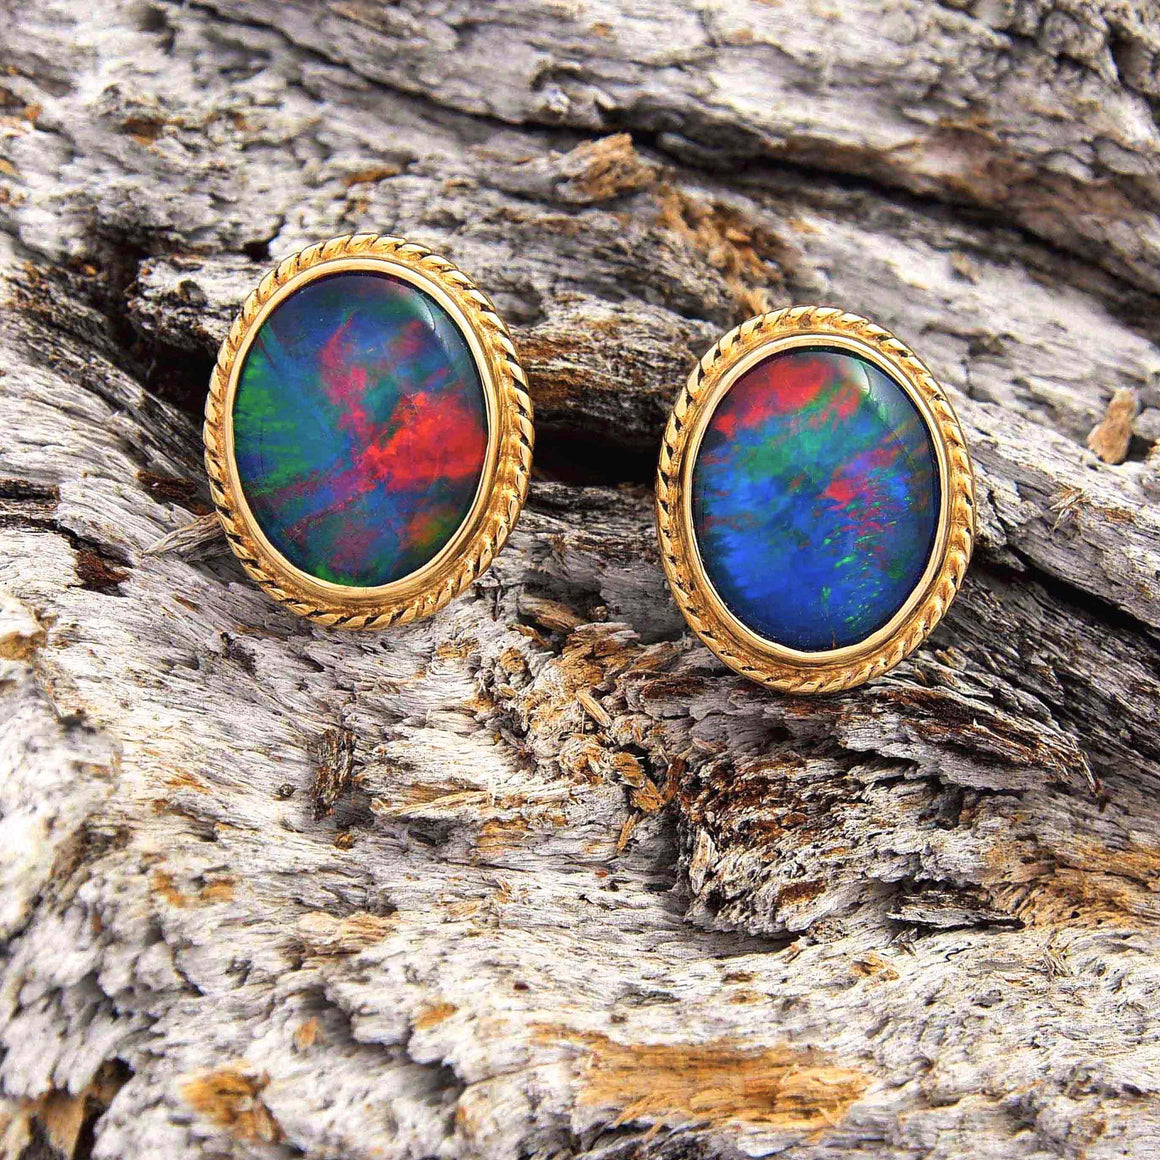 Vintage style 9ct yellow gold oval stud earrings bezel set with rich red, blue and green triplet opals